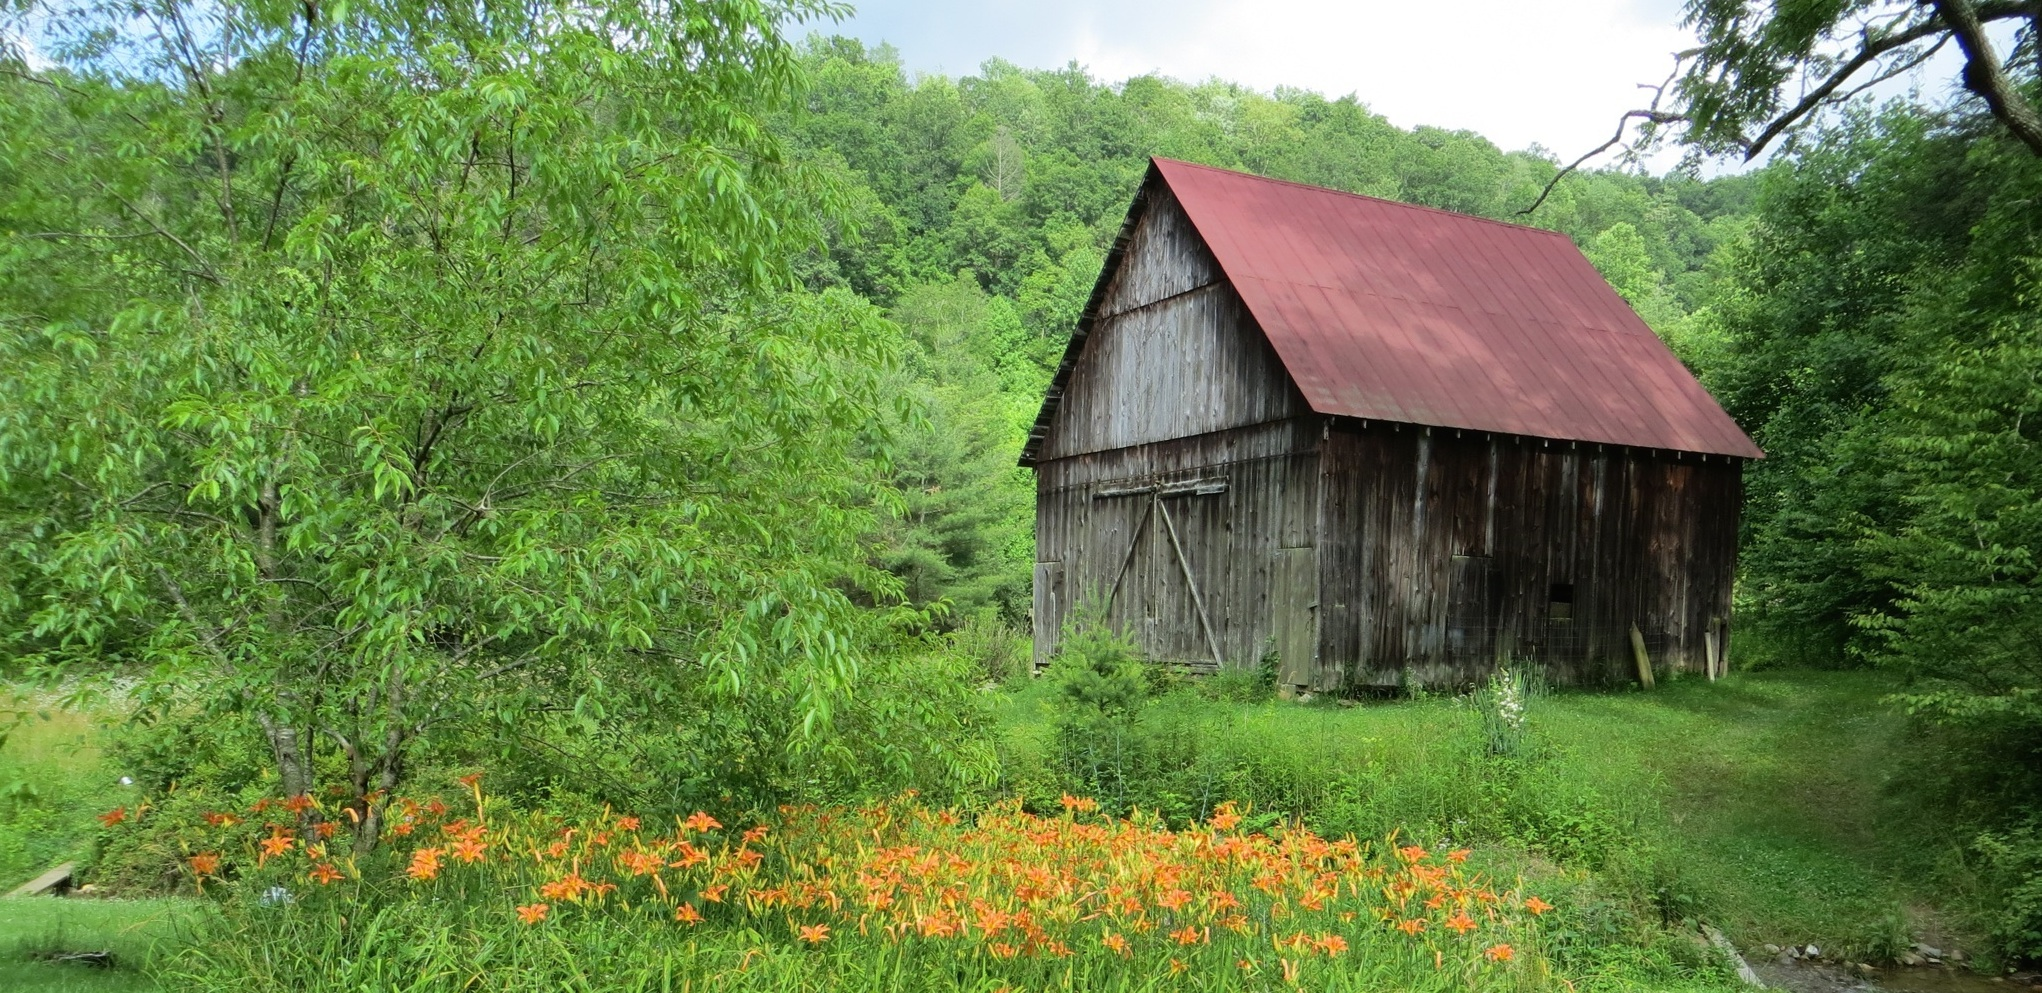 Barn in Appalachia